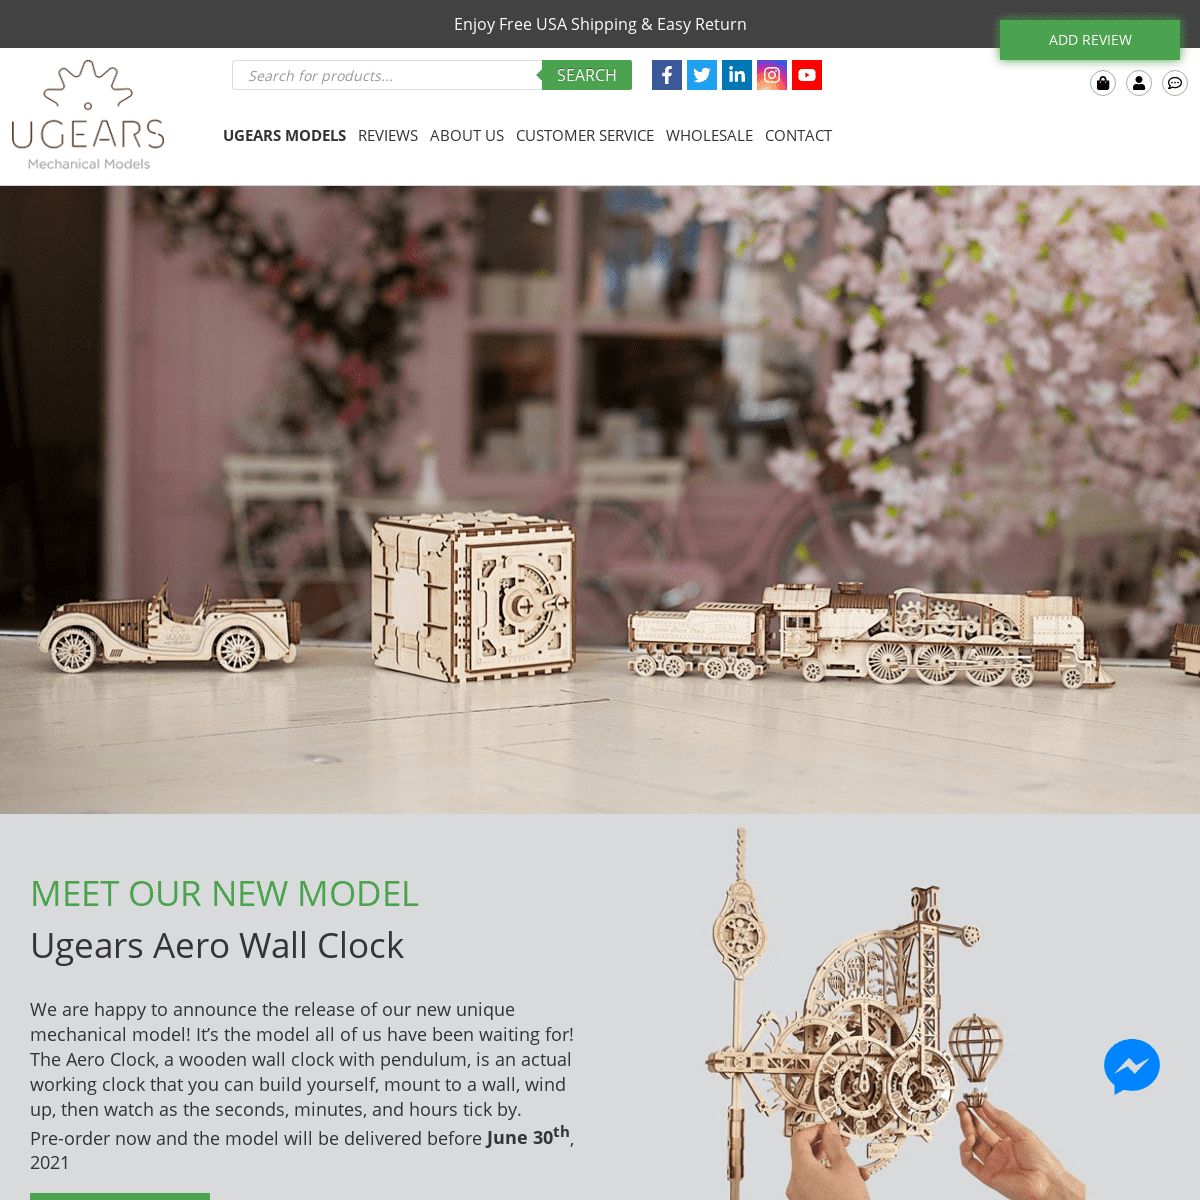 ᐈ UGears 2021 3D Wooden Mechanical Model kits and Puzzles in USA - UGears USA